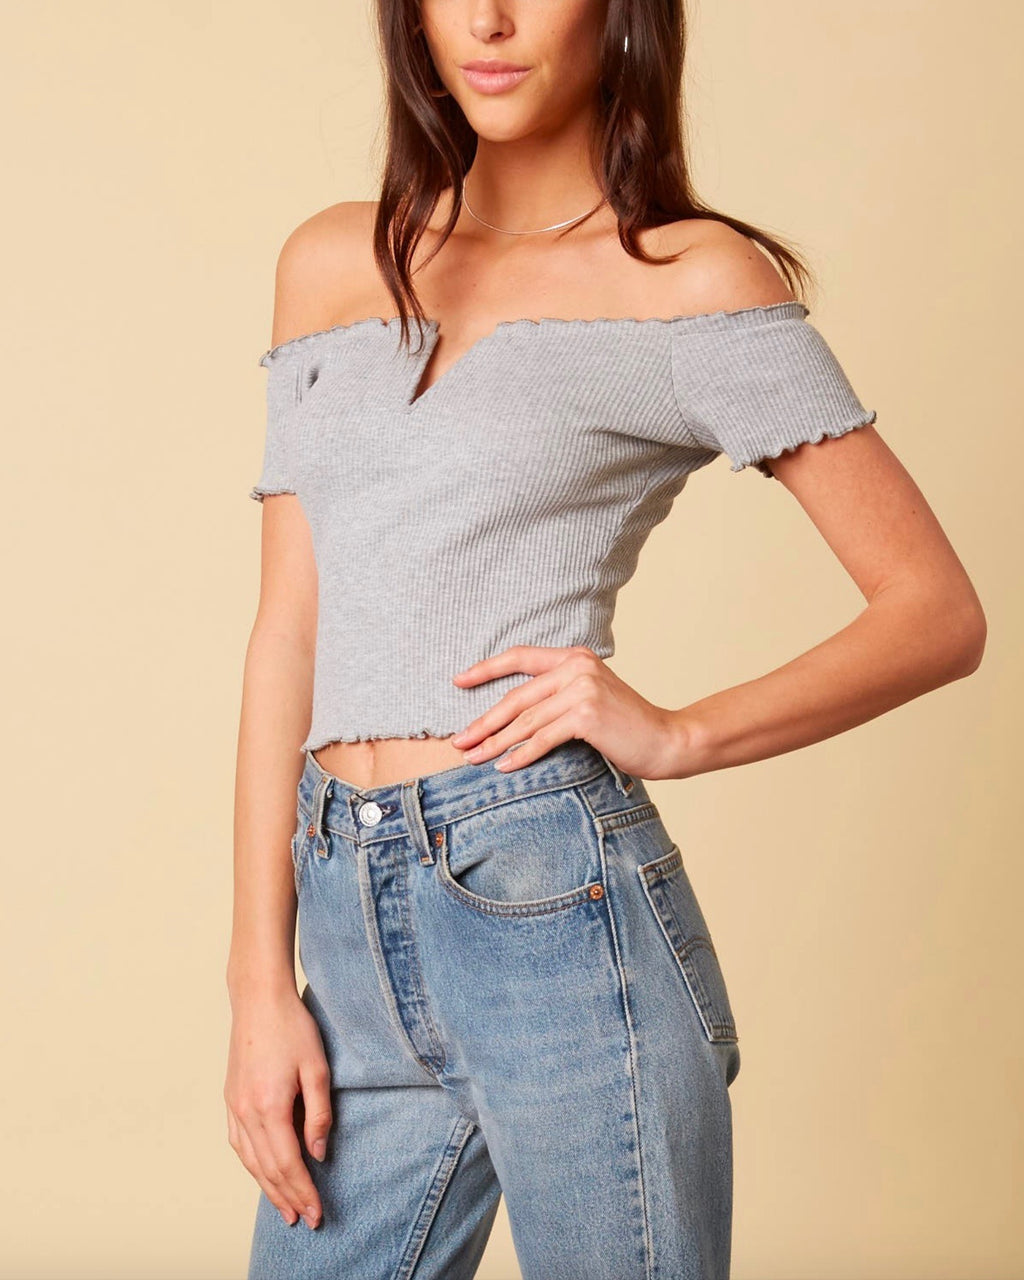 cotton candy la - not one bit - ribbed off the shoulder crop top - heather grey